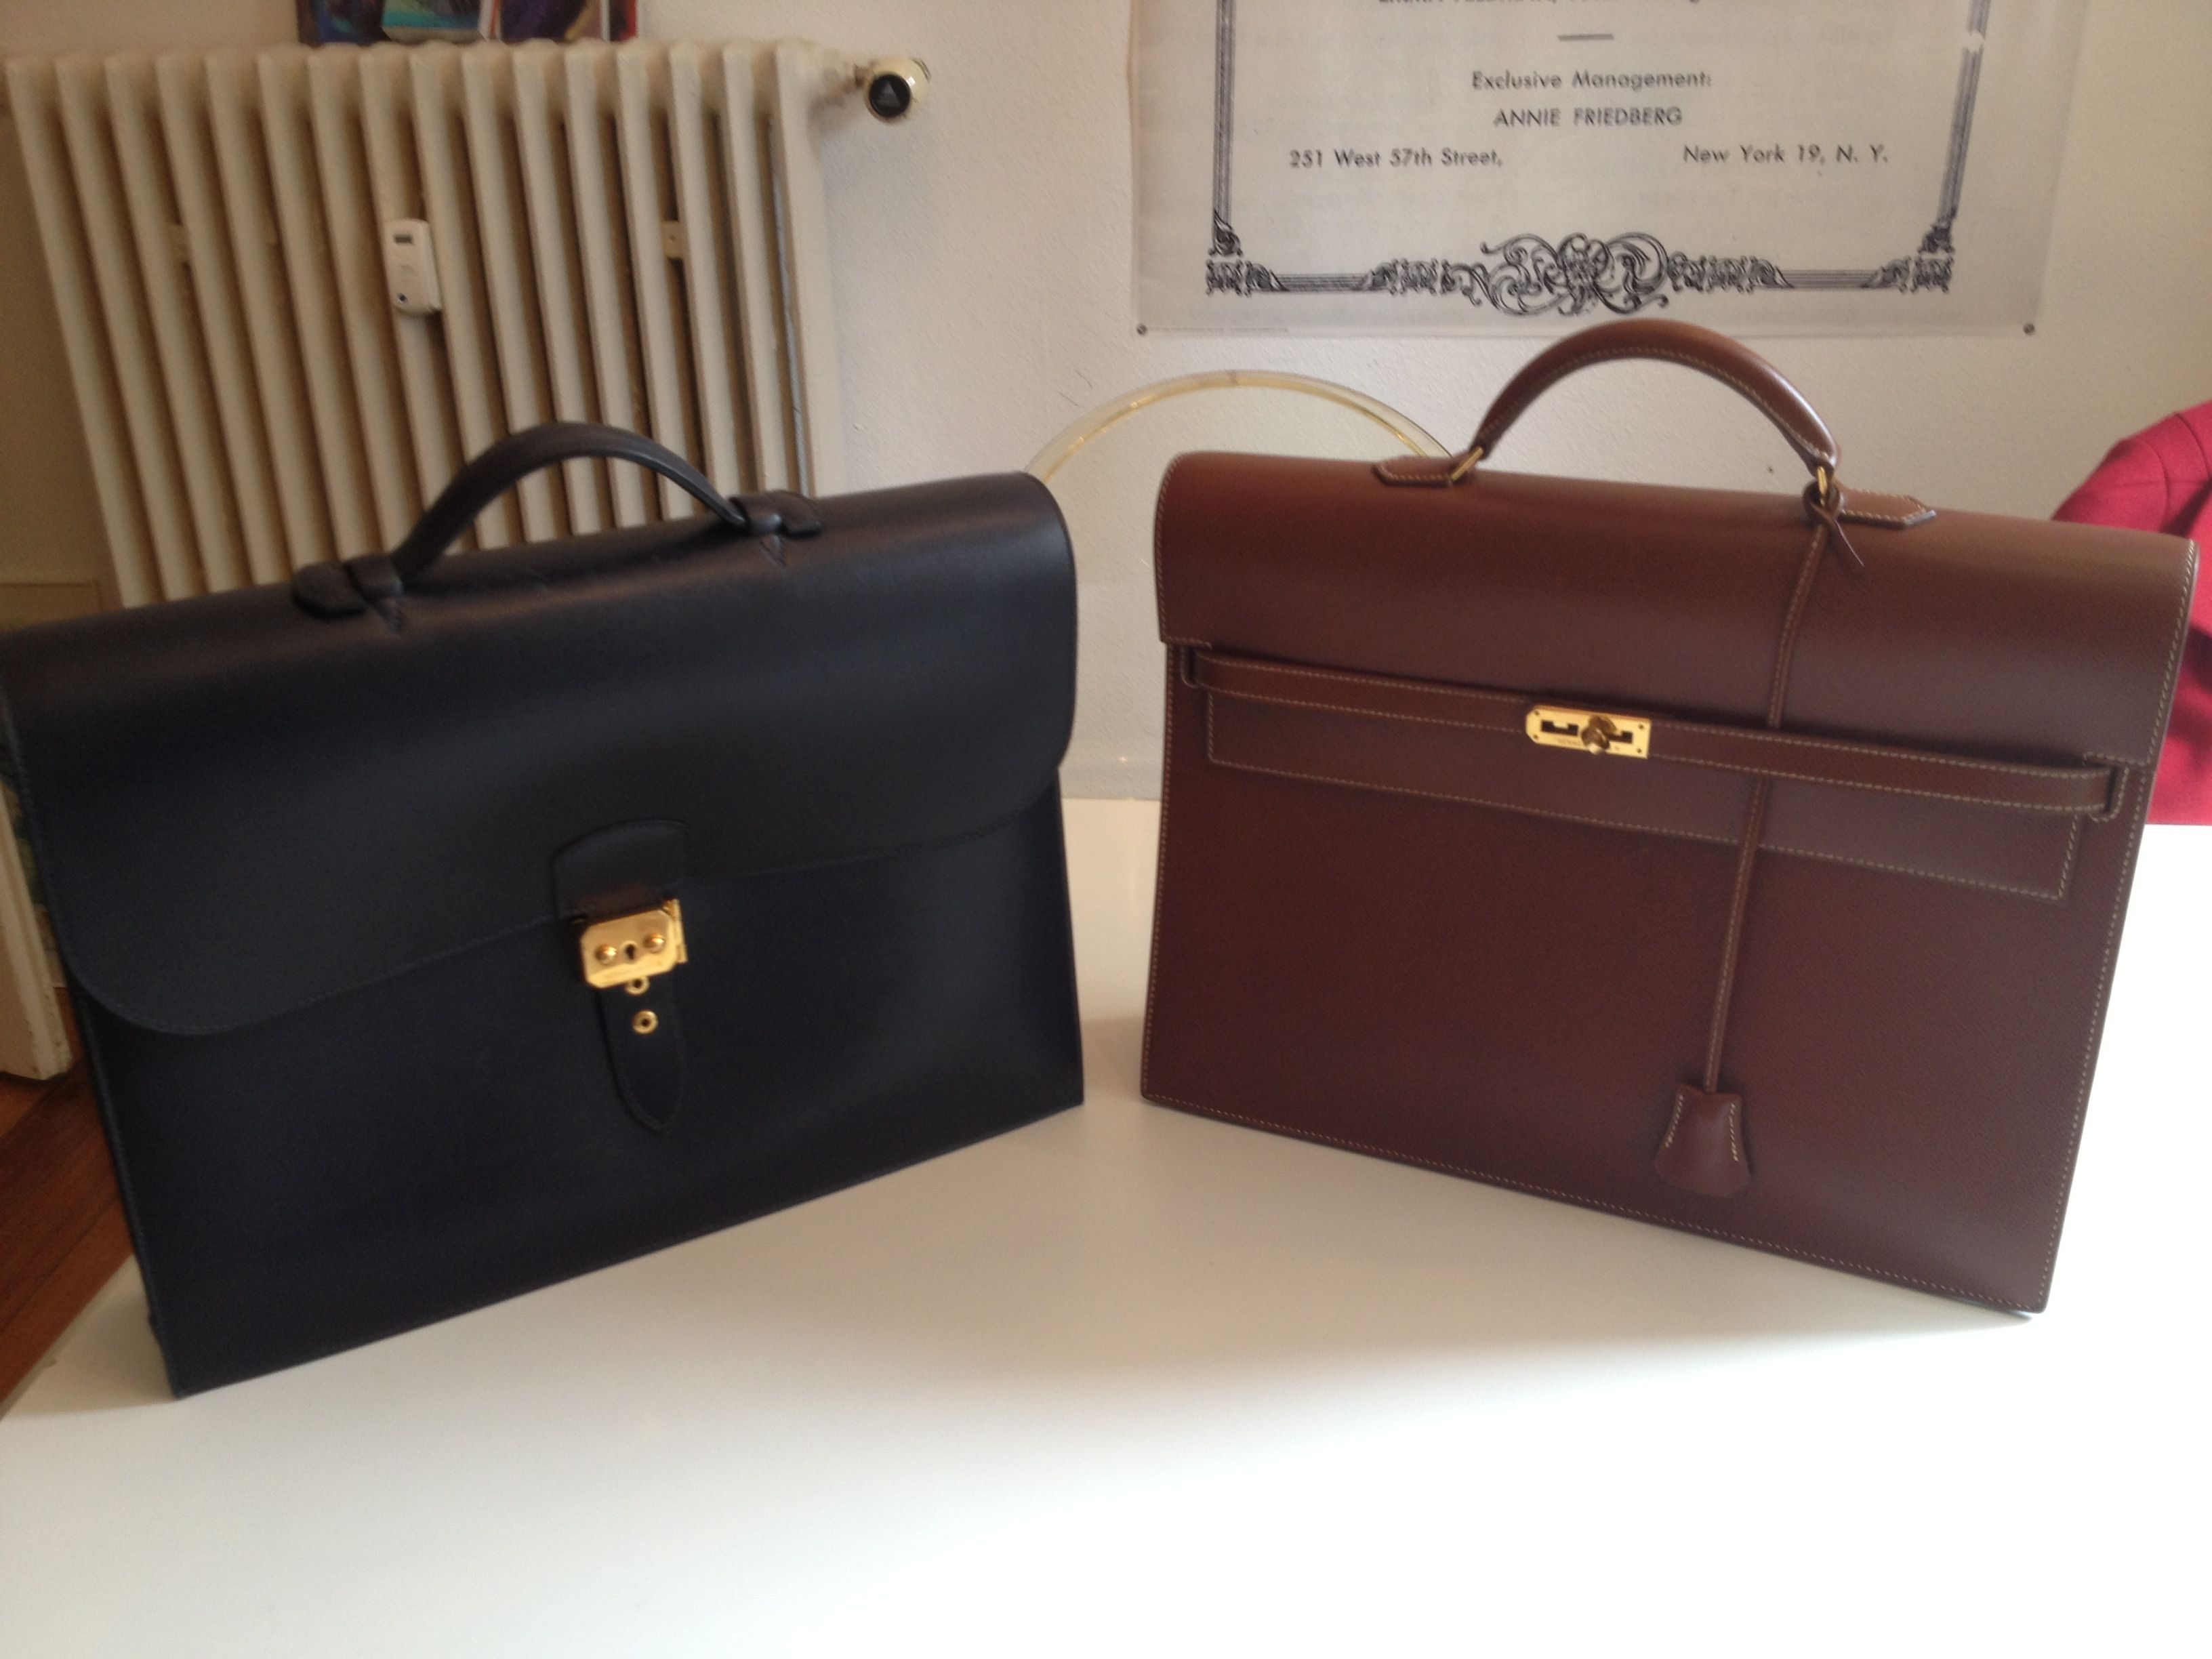 cda24940925c My two Hermes briefcases.. the Sac a depeches and the Kelly a  depeches...can tell which one I like more.